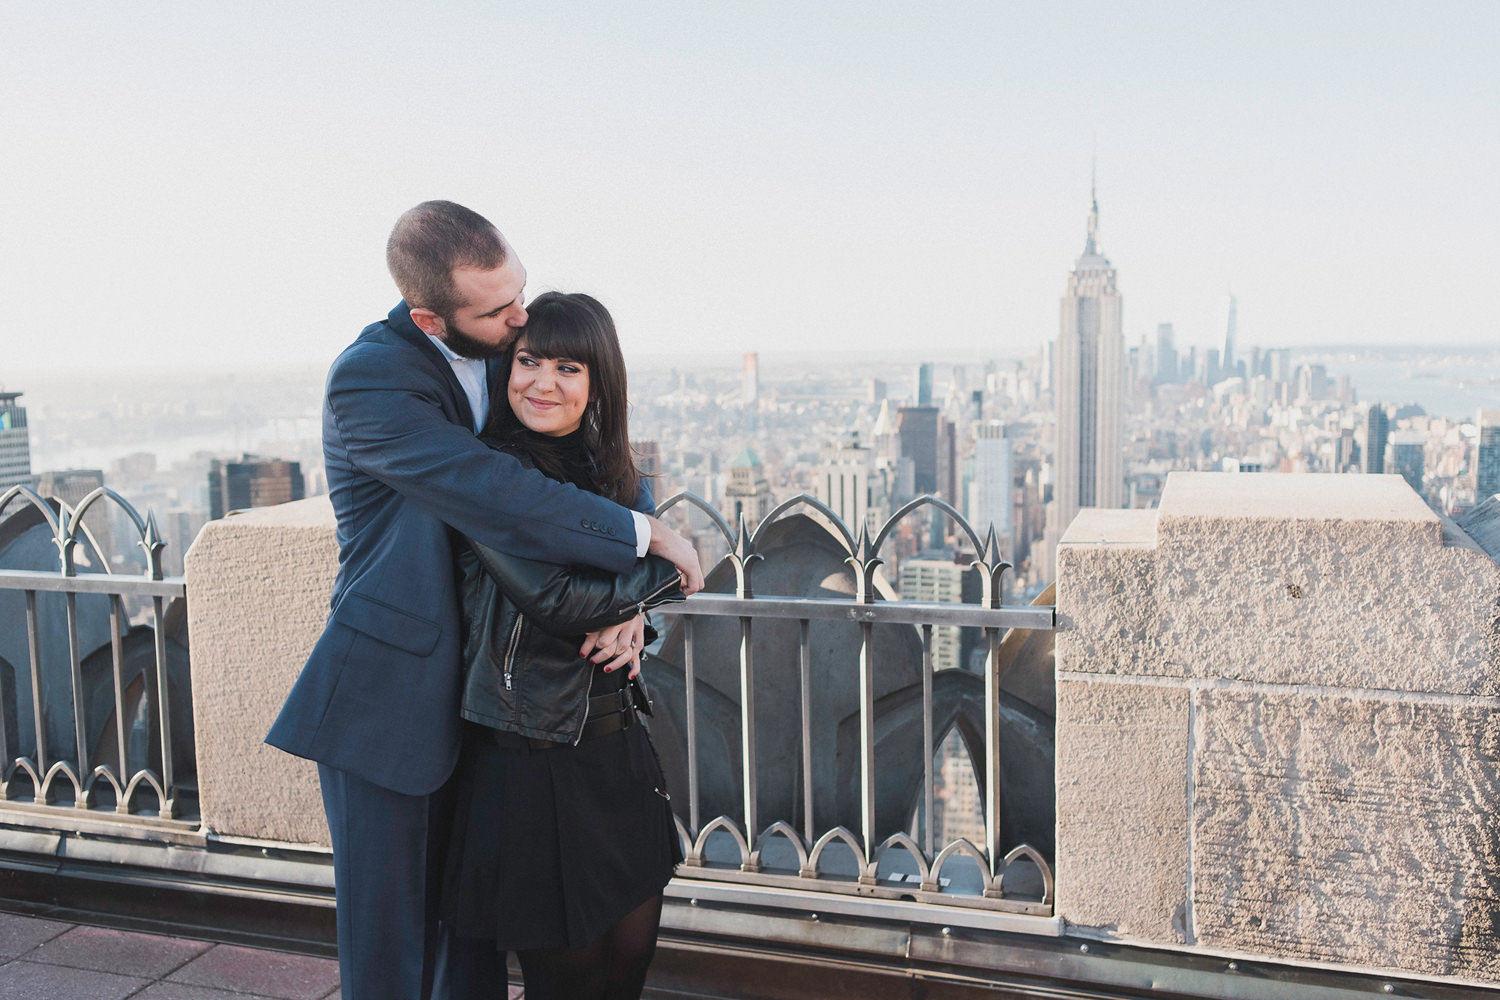 Markie & Jake's Top of the Rock NYC Engagement